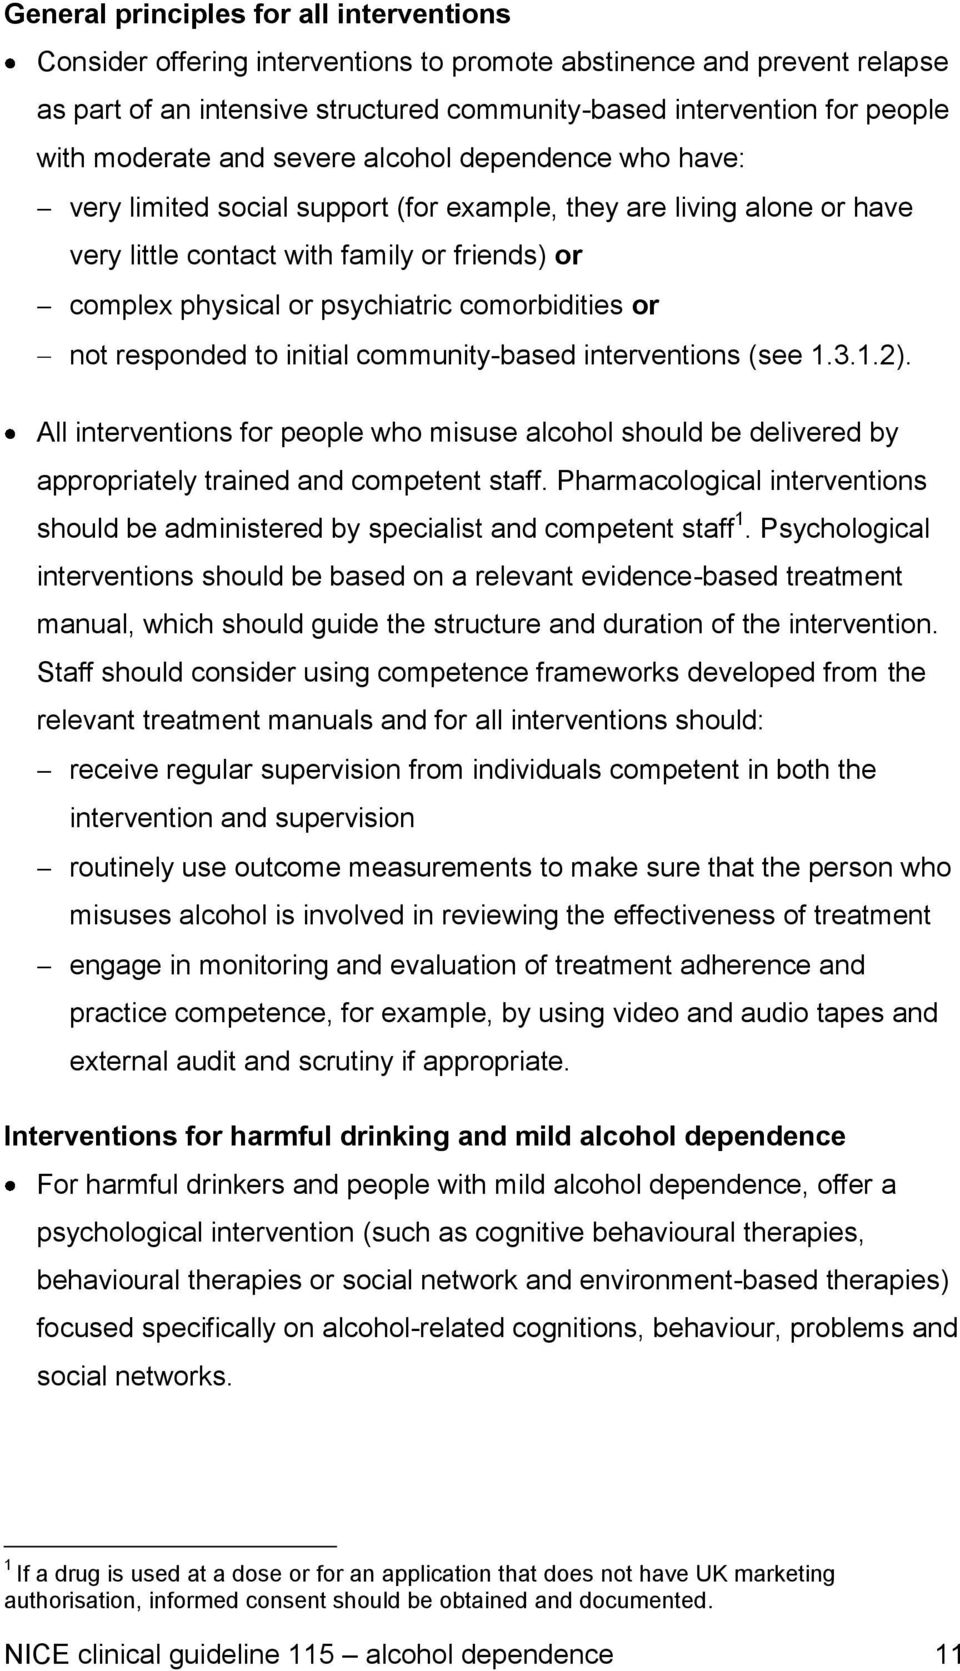 comorbidities or not responded to initial community-based interventions (see 1.3.1.2). All interventions for people who misuse alcohol should be delivered by appropriately trained and competent staff.